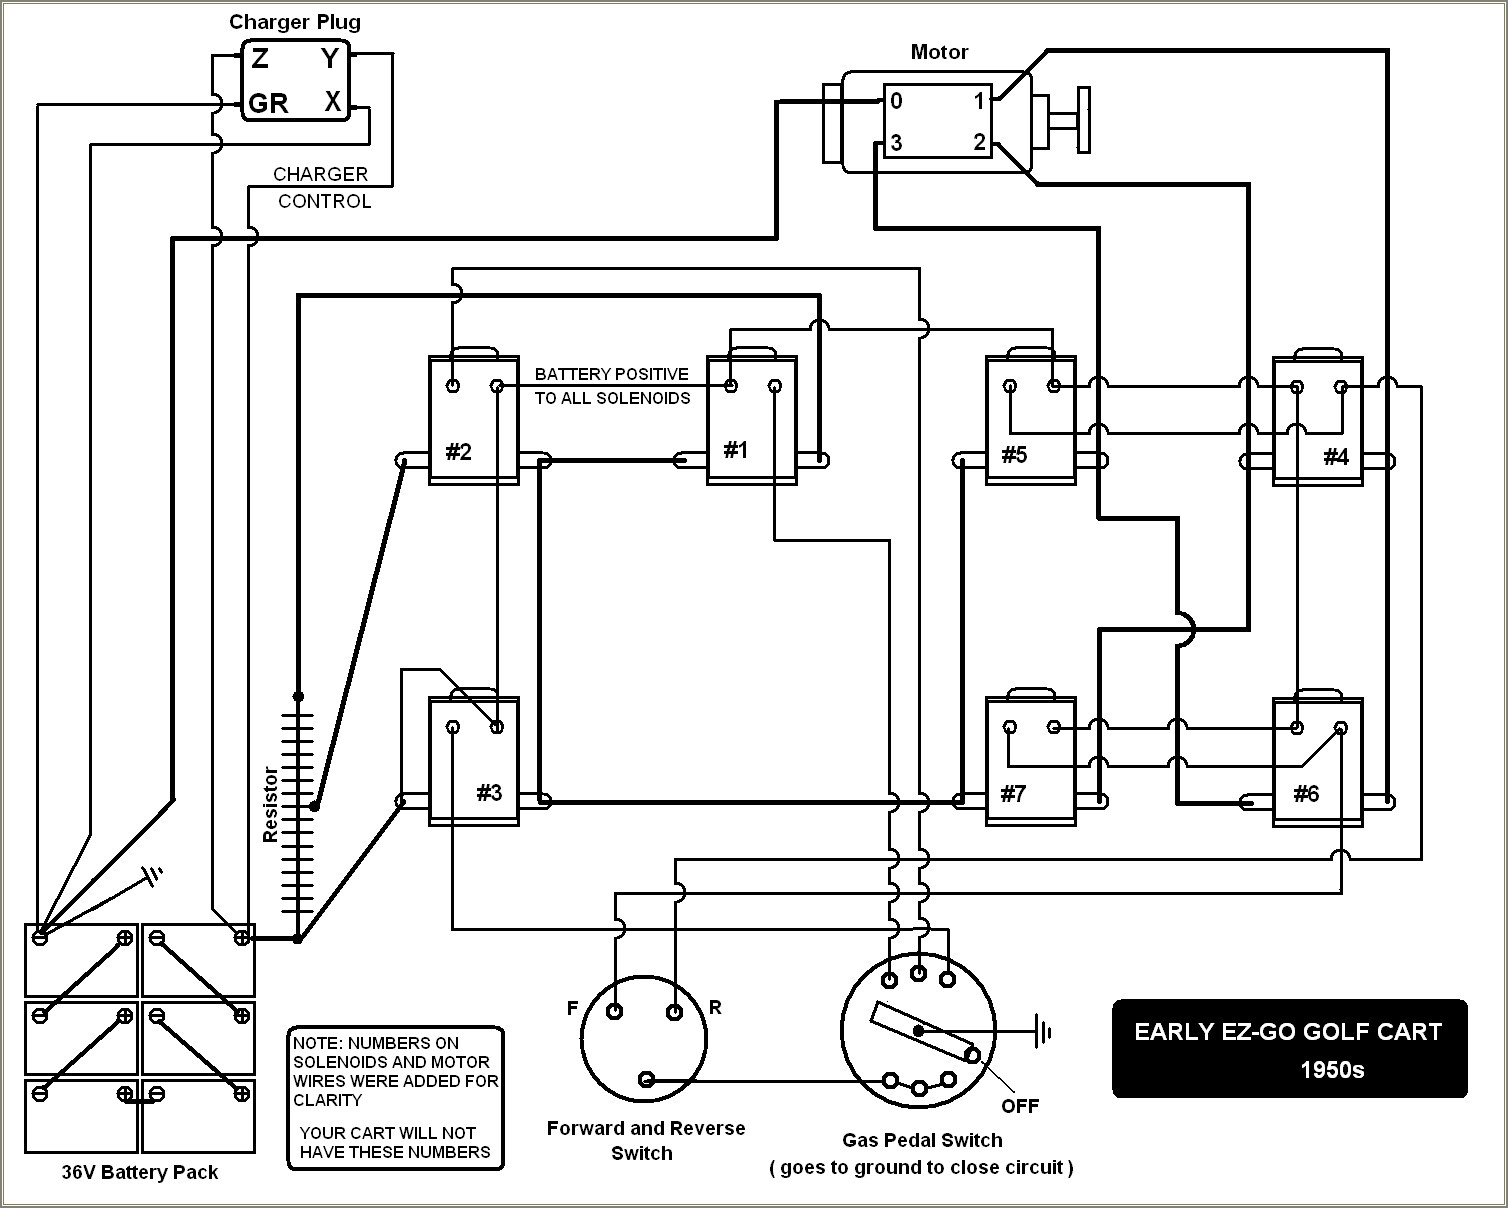 Club Car Charger Receptacle Wiring Diagram